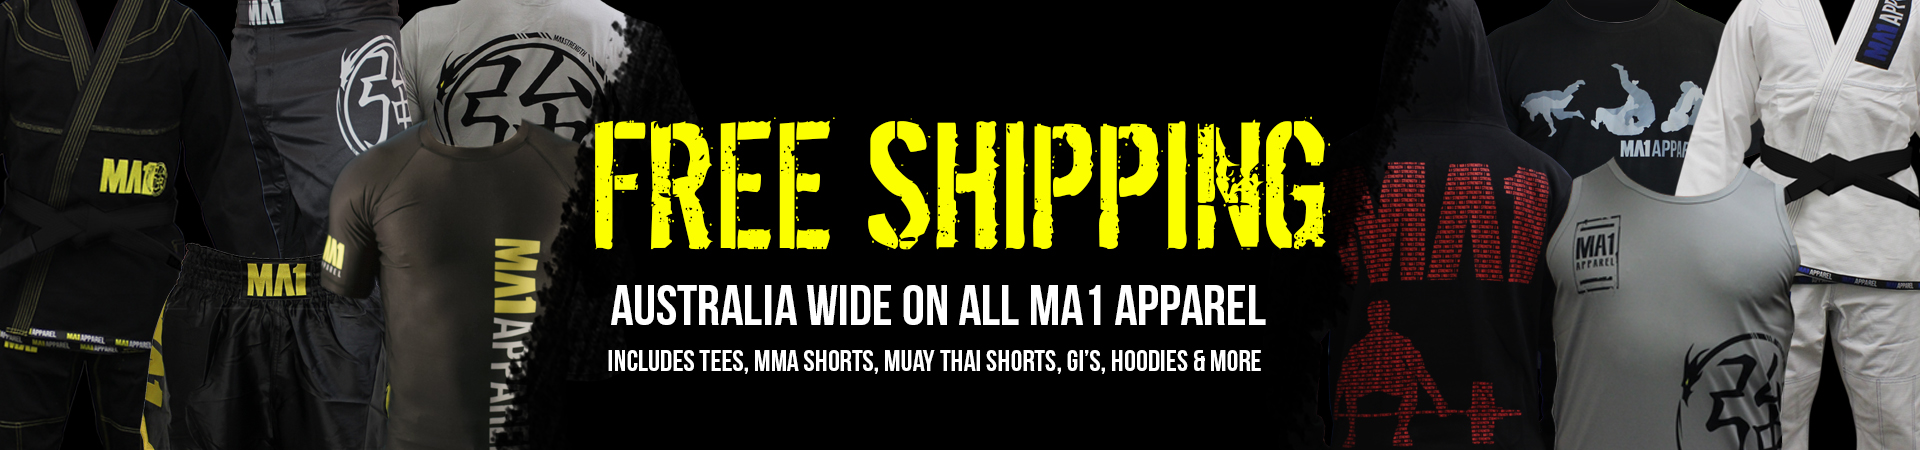 Free Shipping on All Apparel Items